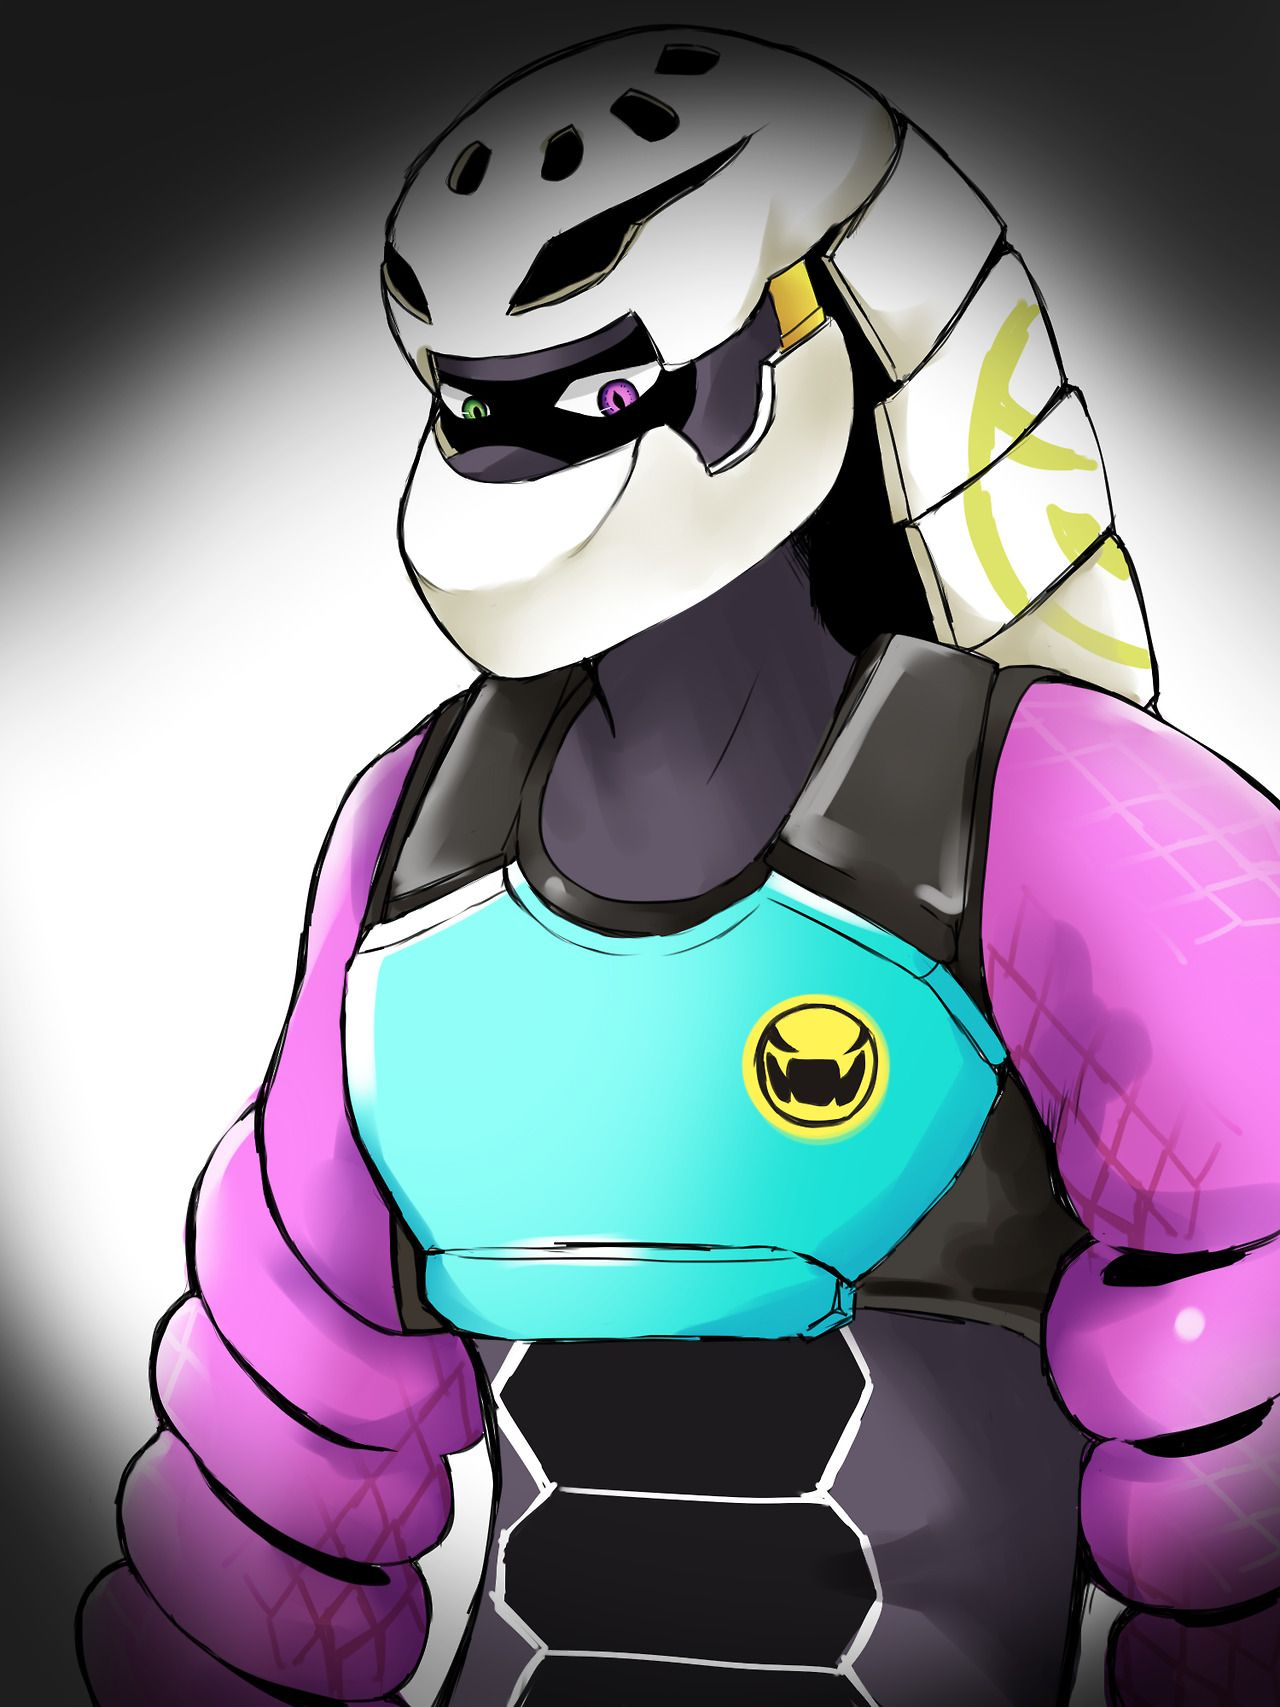 Pin by lucky 410gamer on Arms Kid cobra, Arms, Fan art